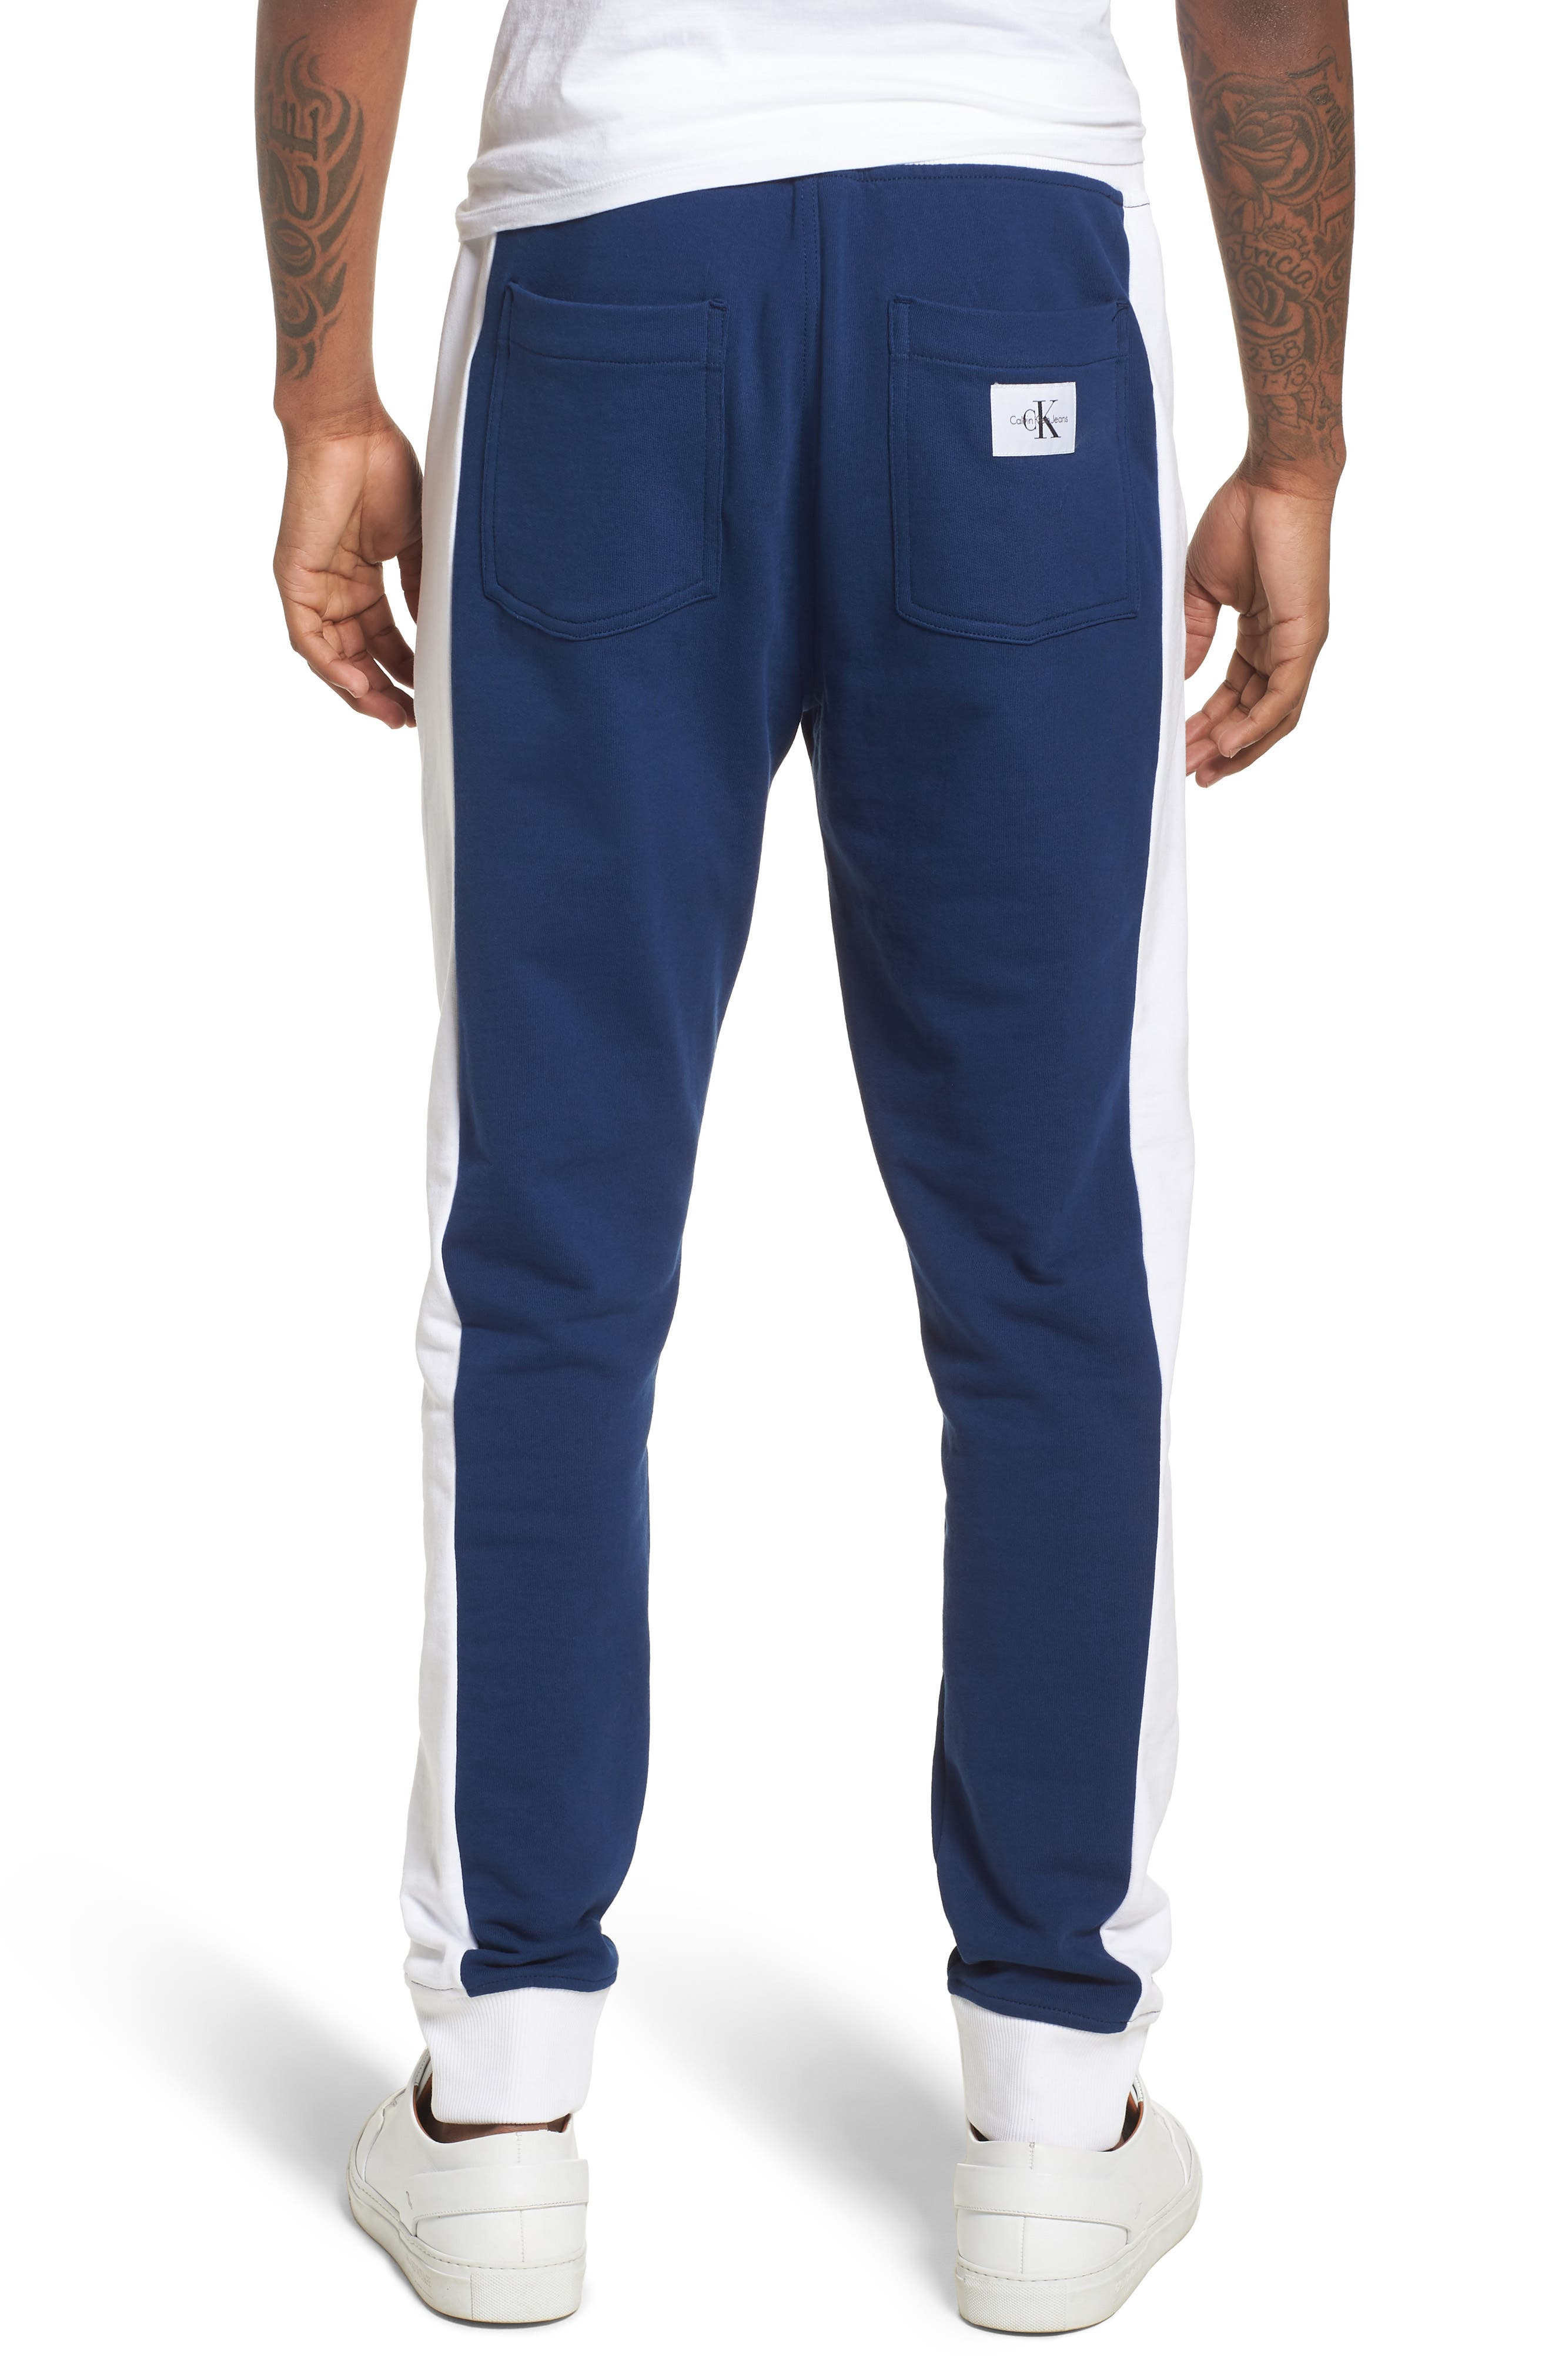 Athletic Collage Sweatpants,                             Alternate thumbnail 2, color,                             Night Rider